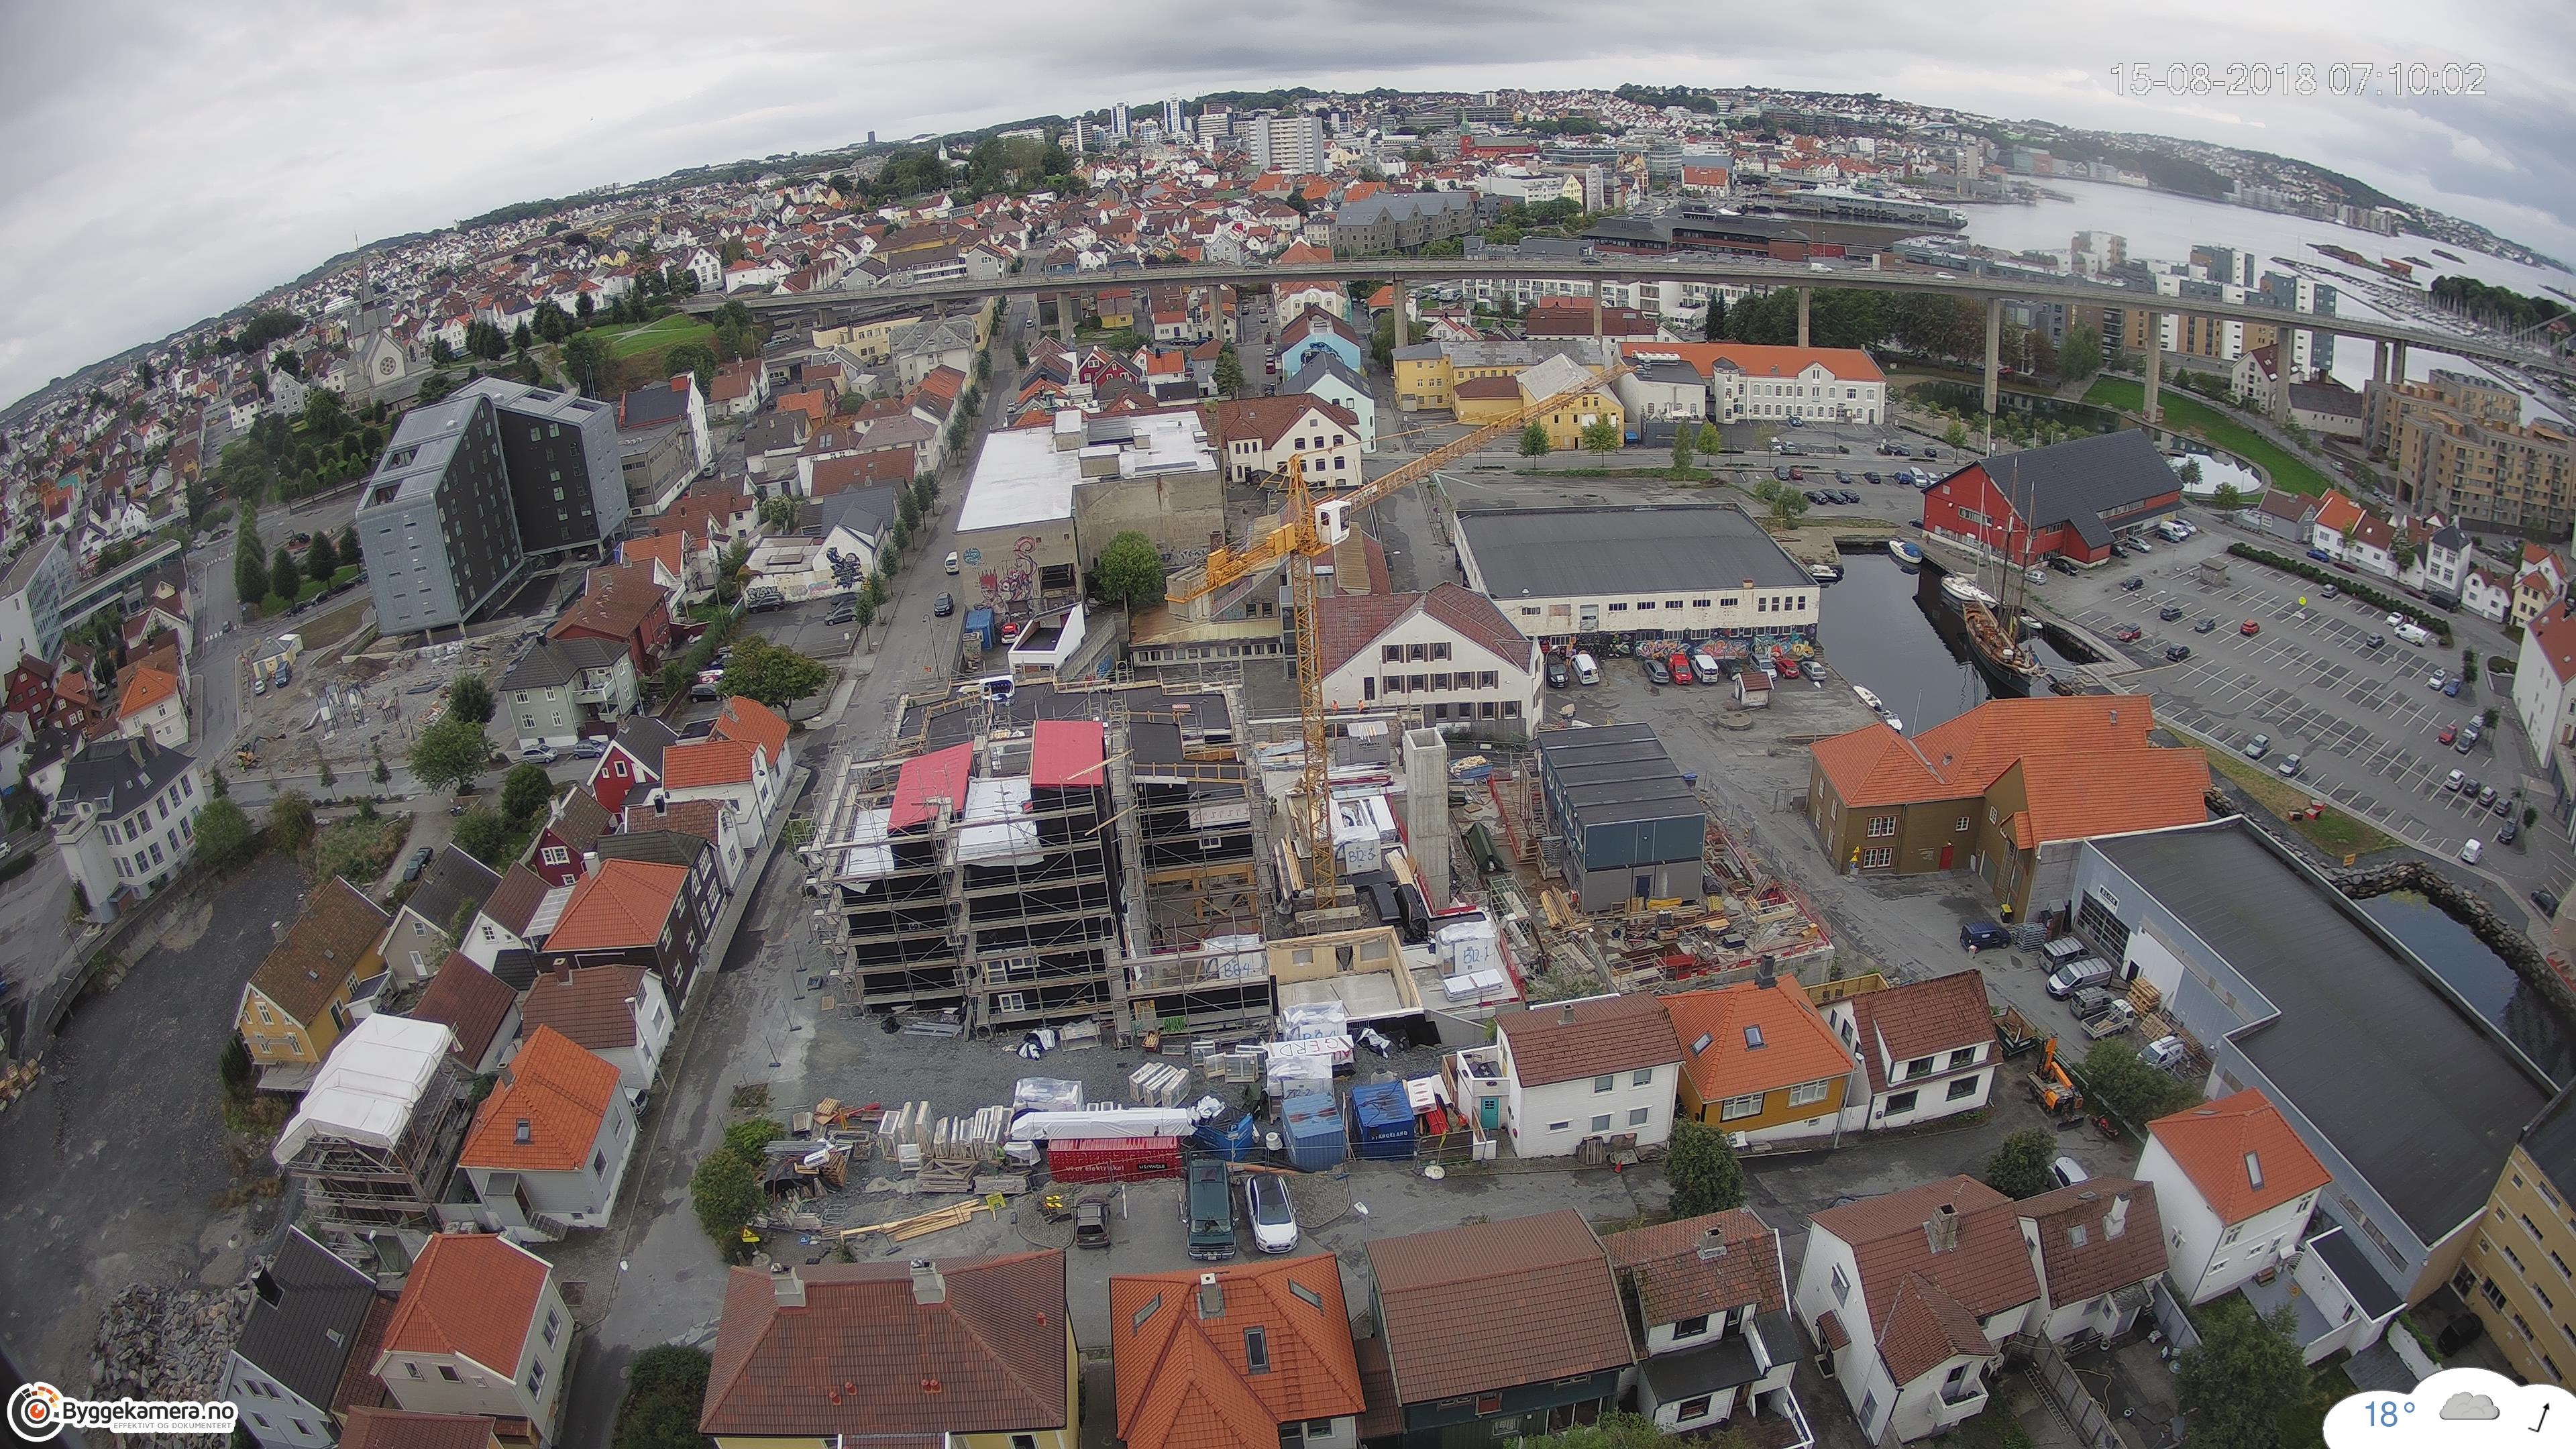 Vindmolleparken Byggekamera timelapse video